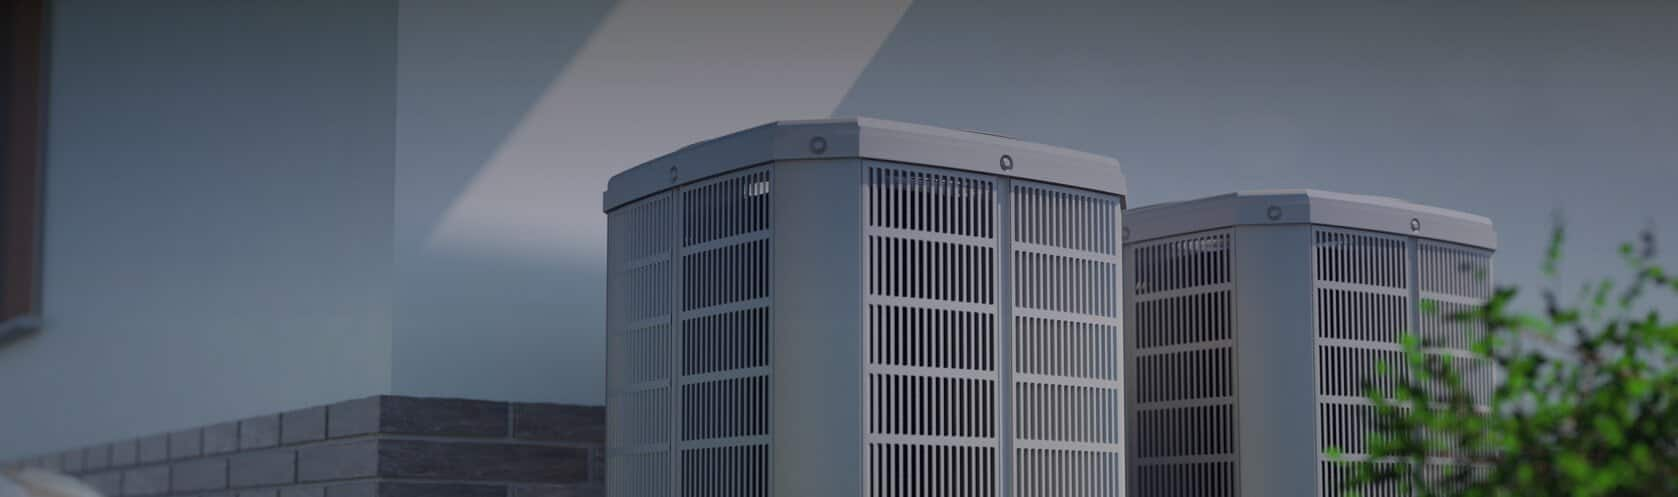 Top-rated heating & air conditioning/hvac work.